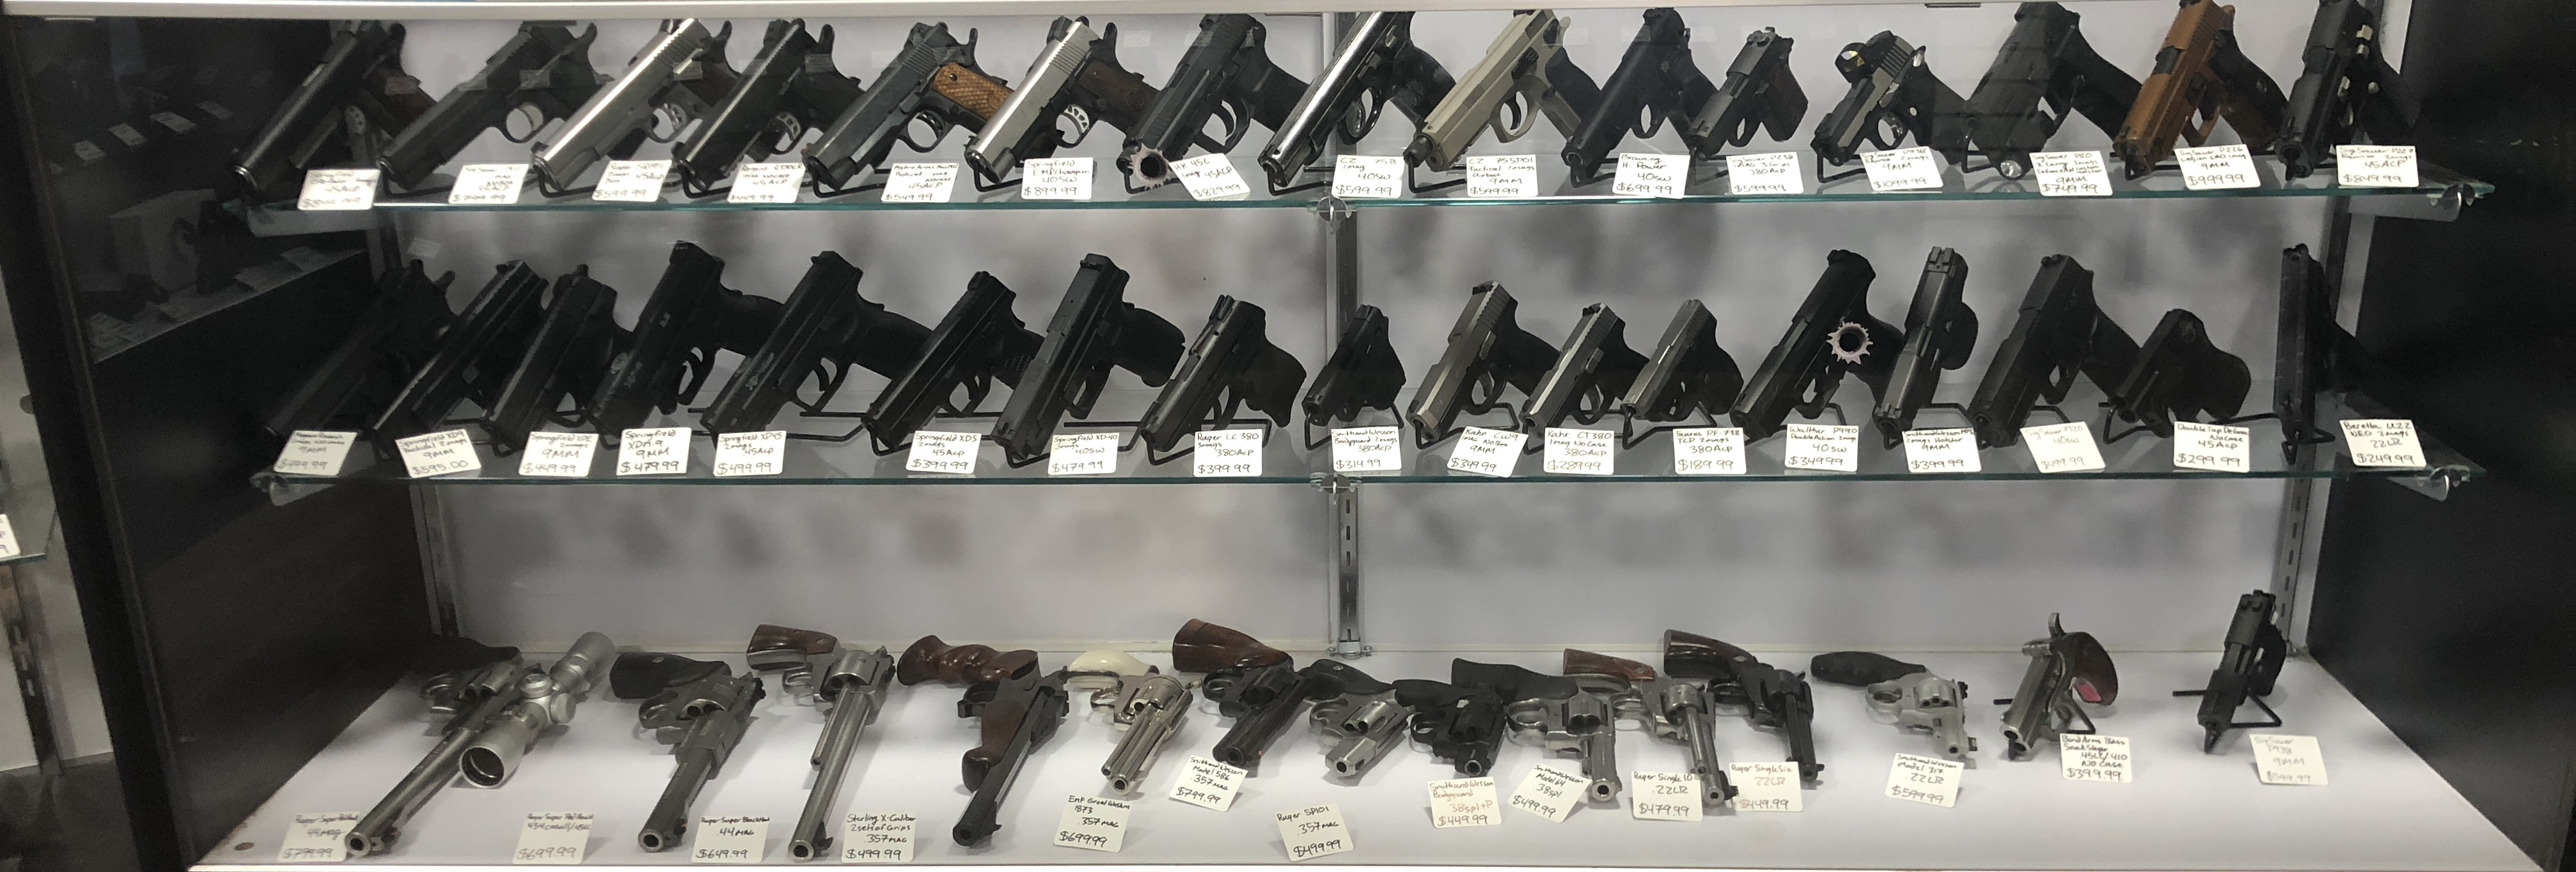 Shop Handguns online at Ctr Firearms in janesville, Wisconsin